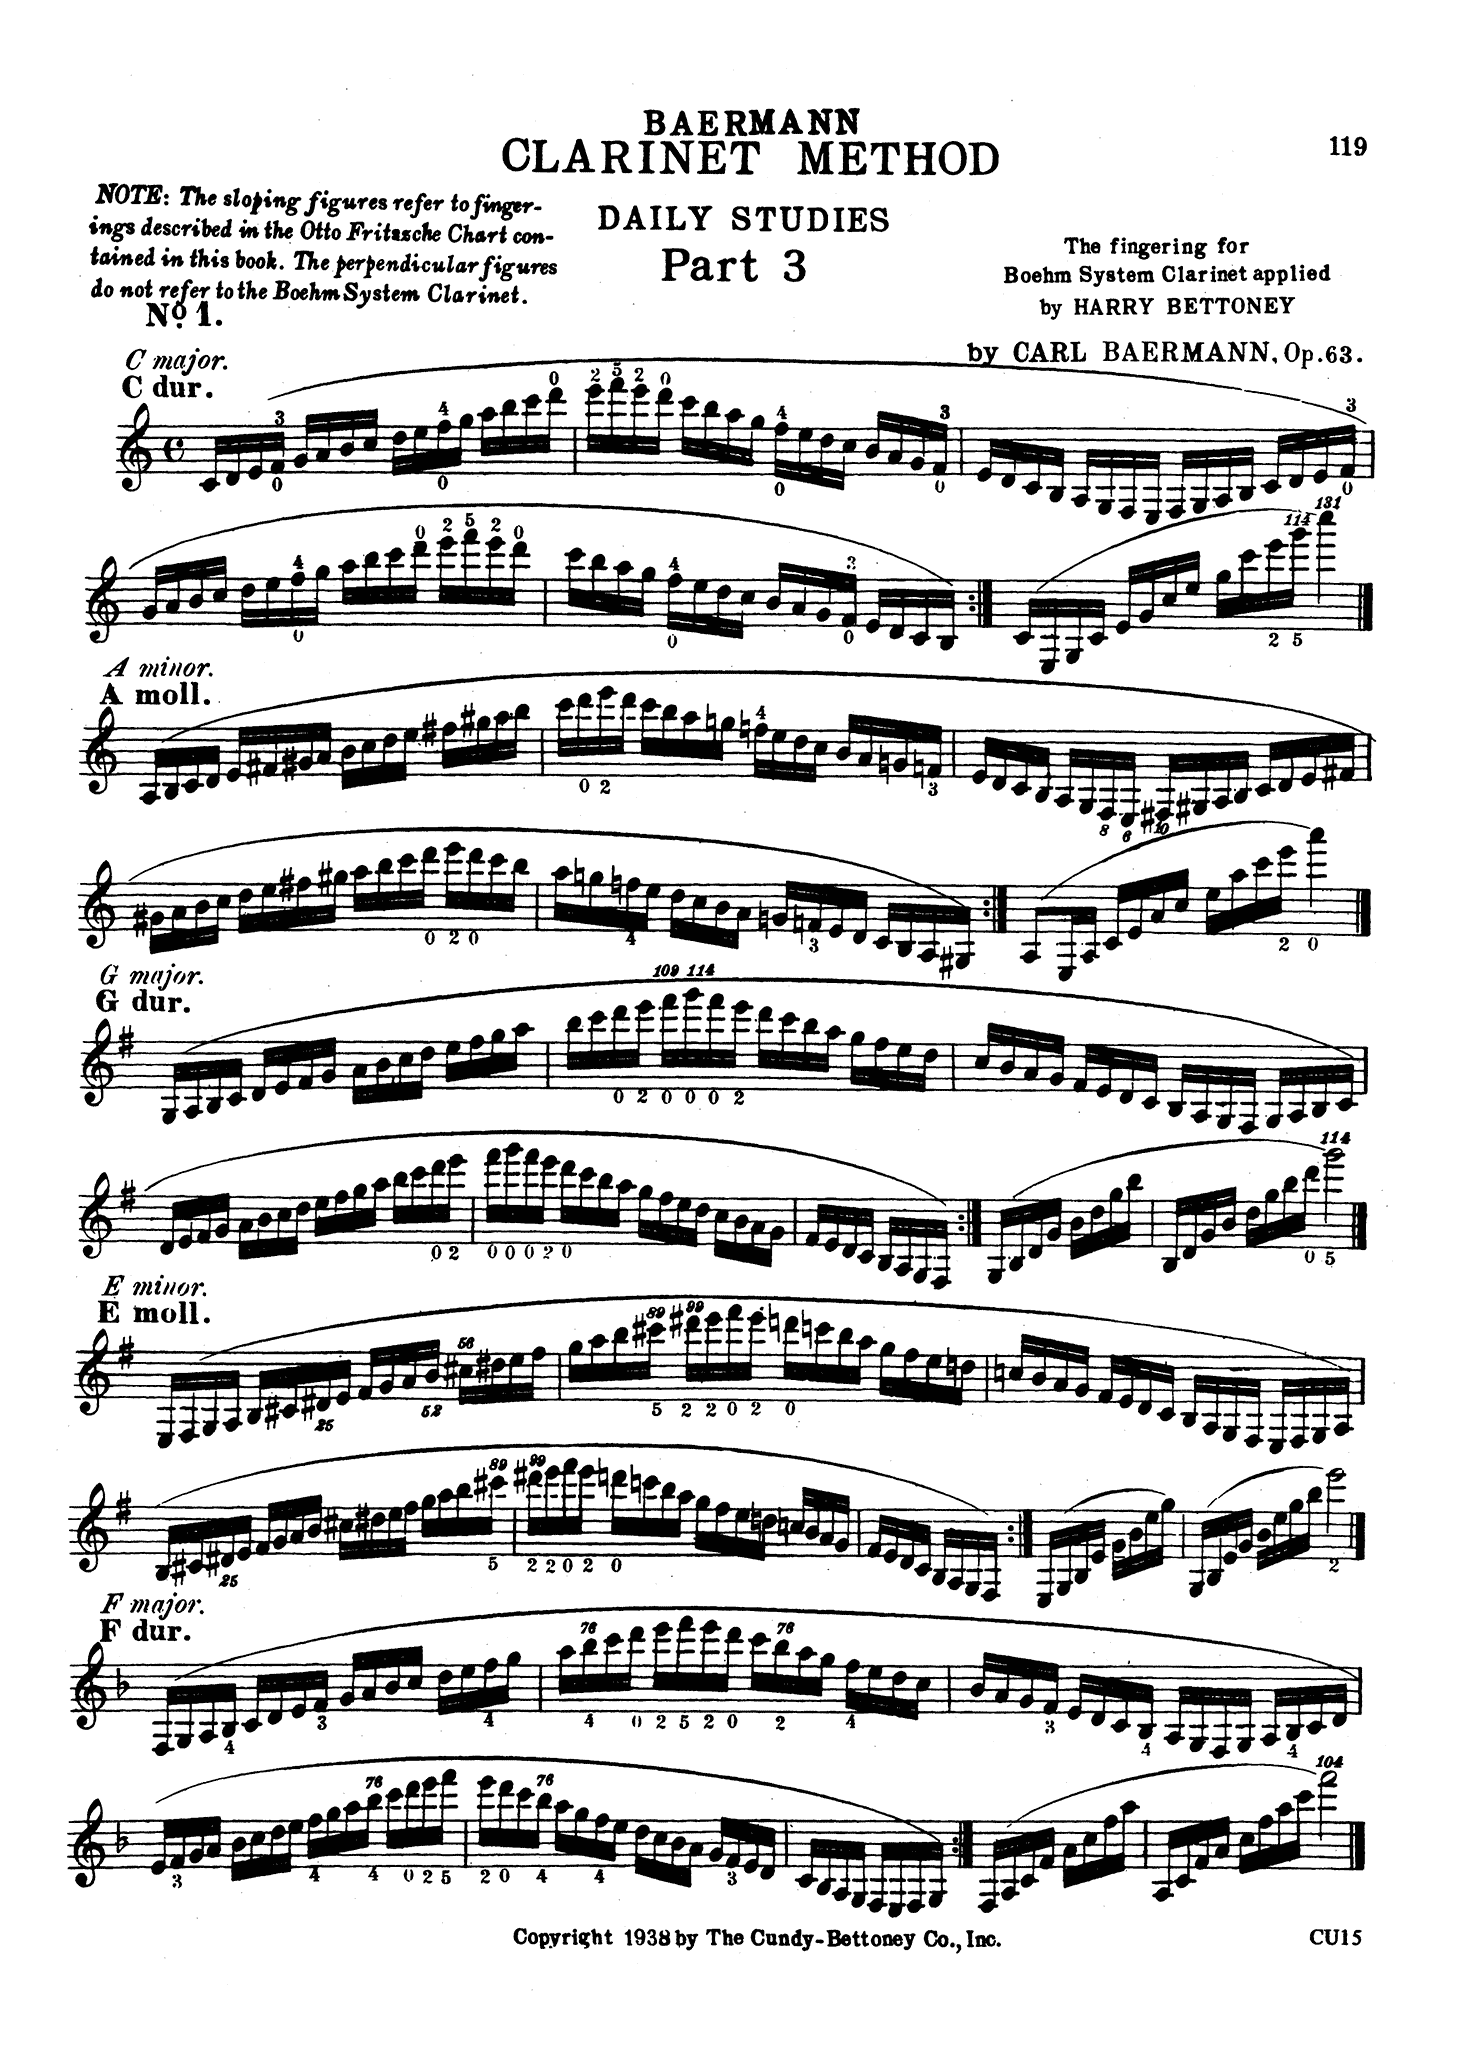 Complete Clarinet Method, Op. 63: Division 3 (Daily Studies) Page 119